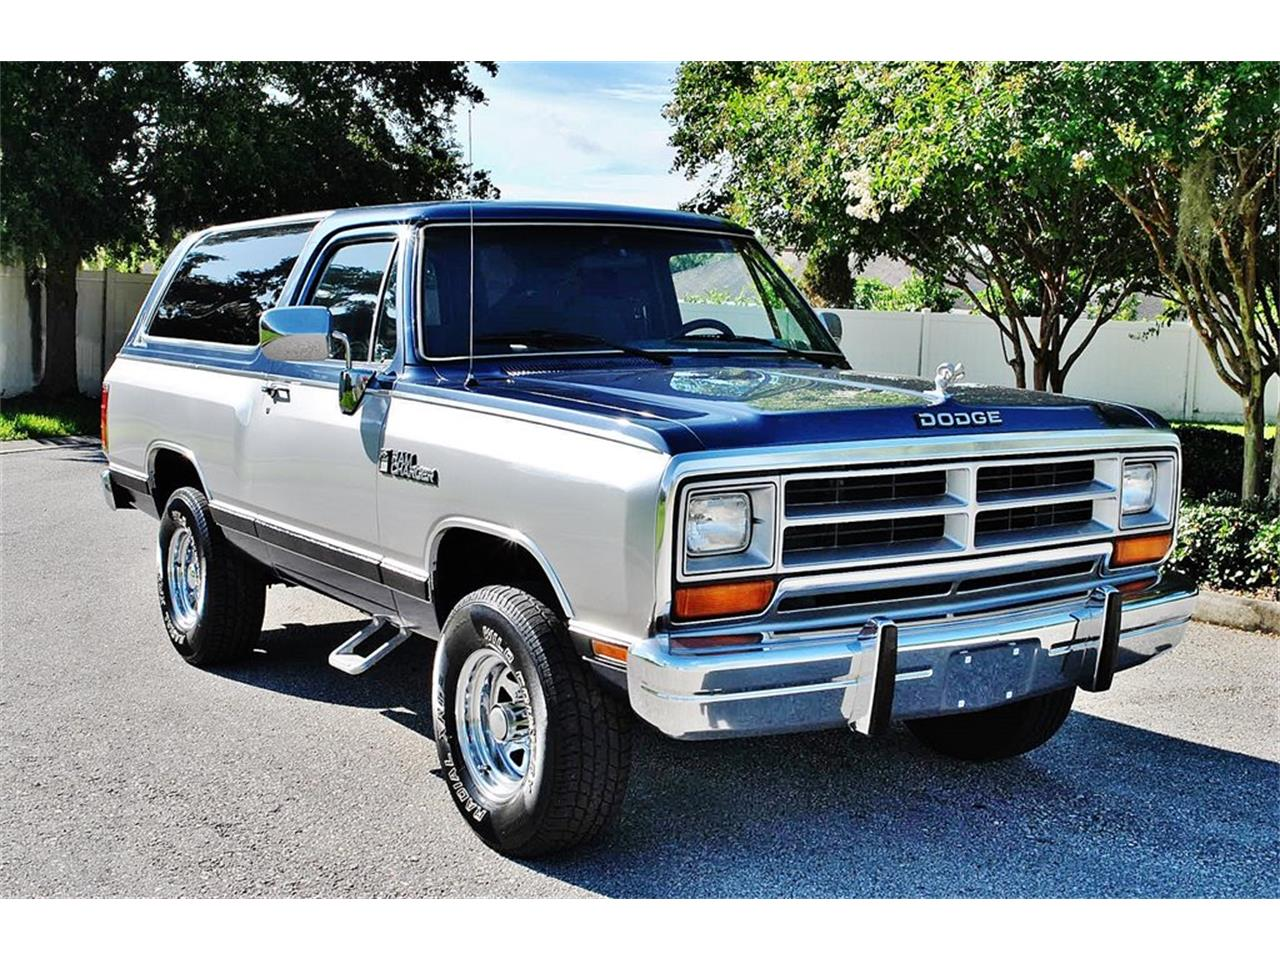 1988 Dodge Ramcharger For Sale Classiccars Com Cc 1011157